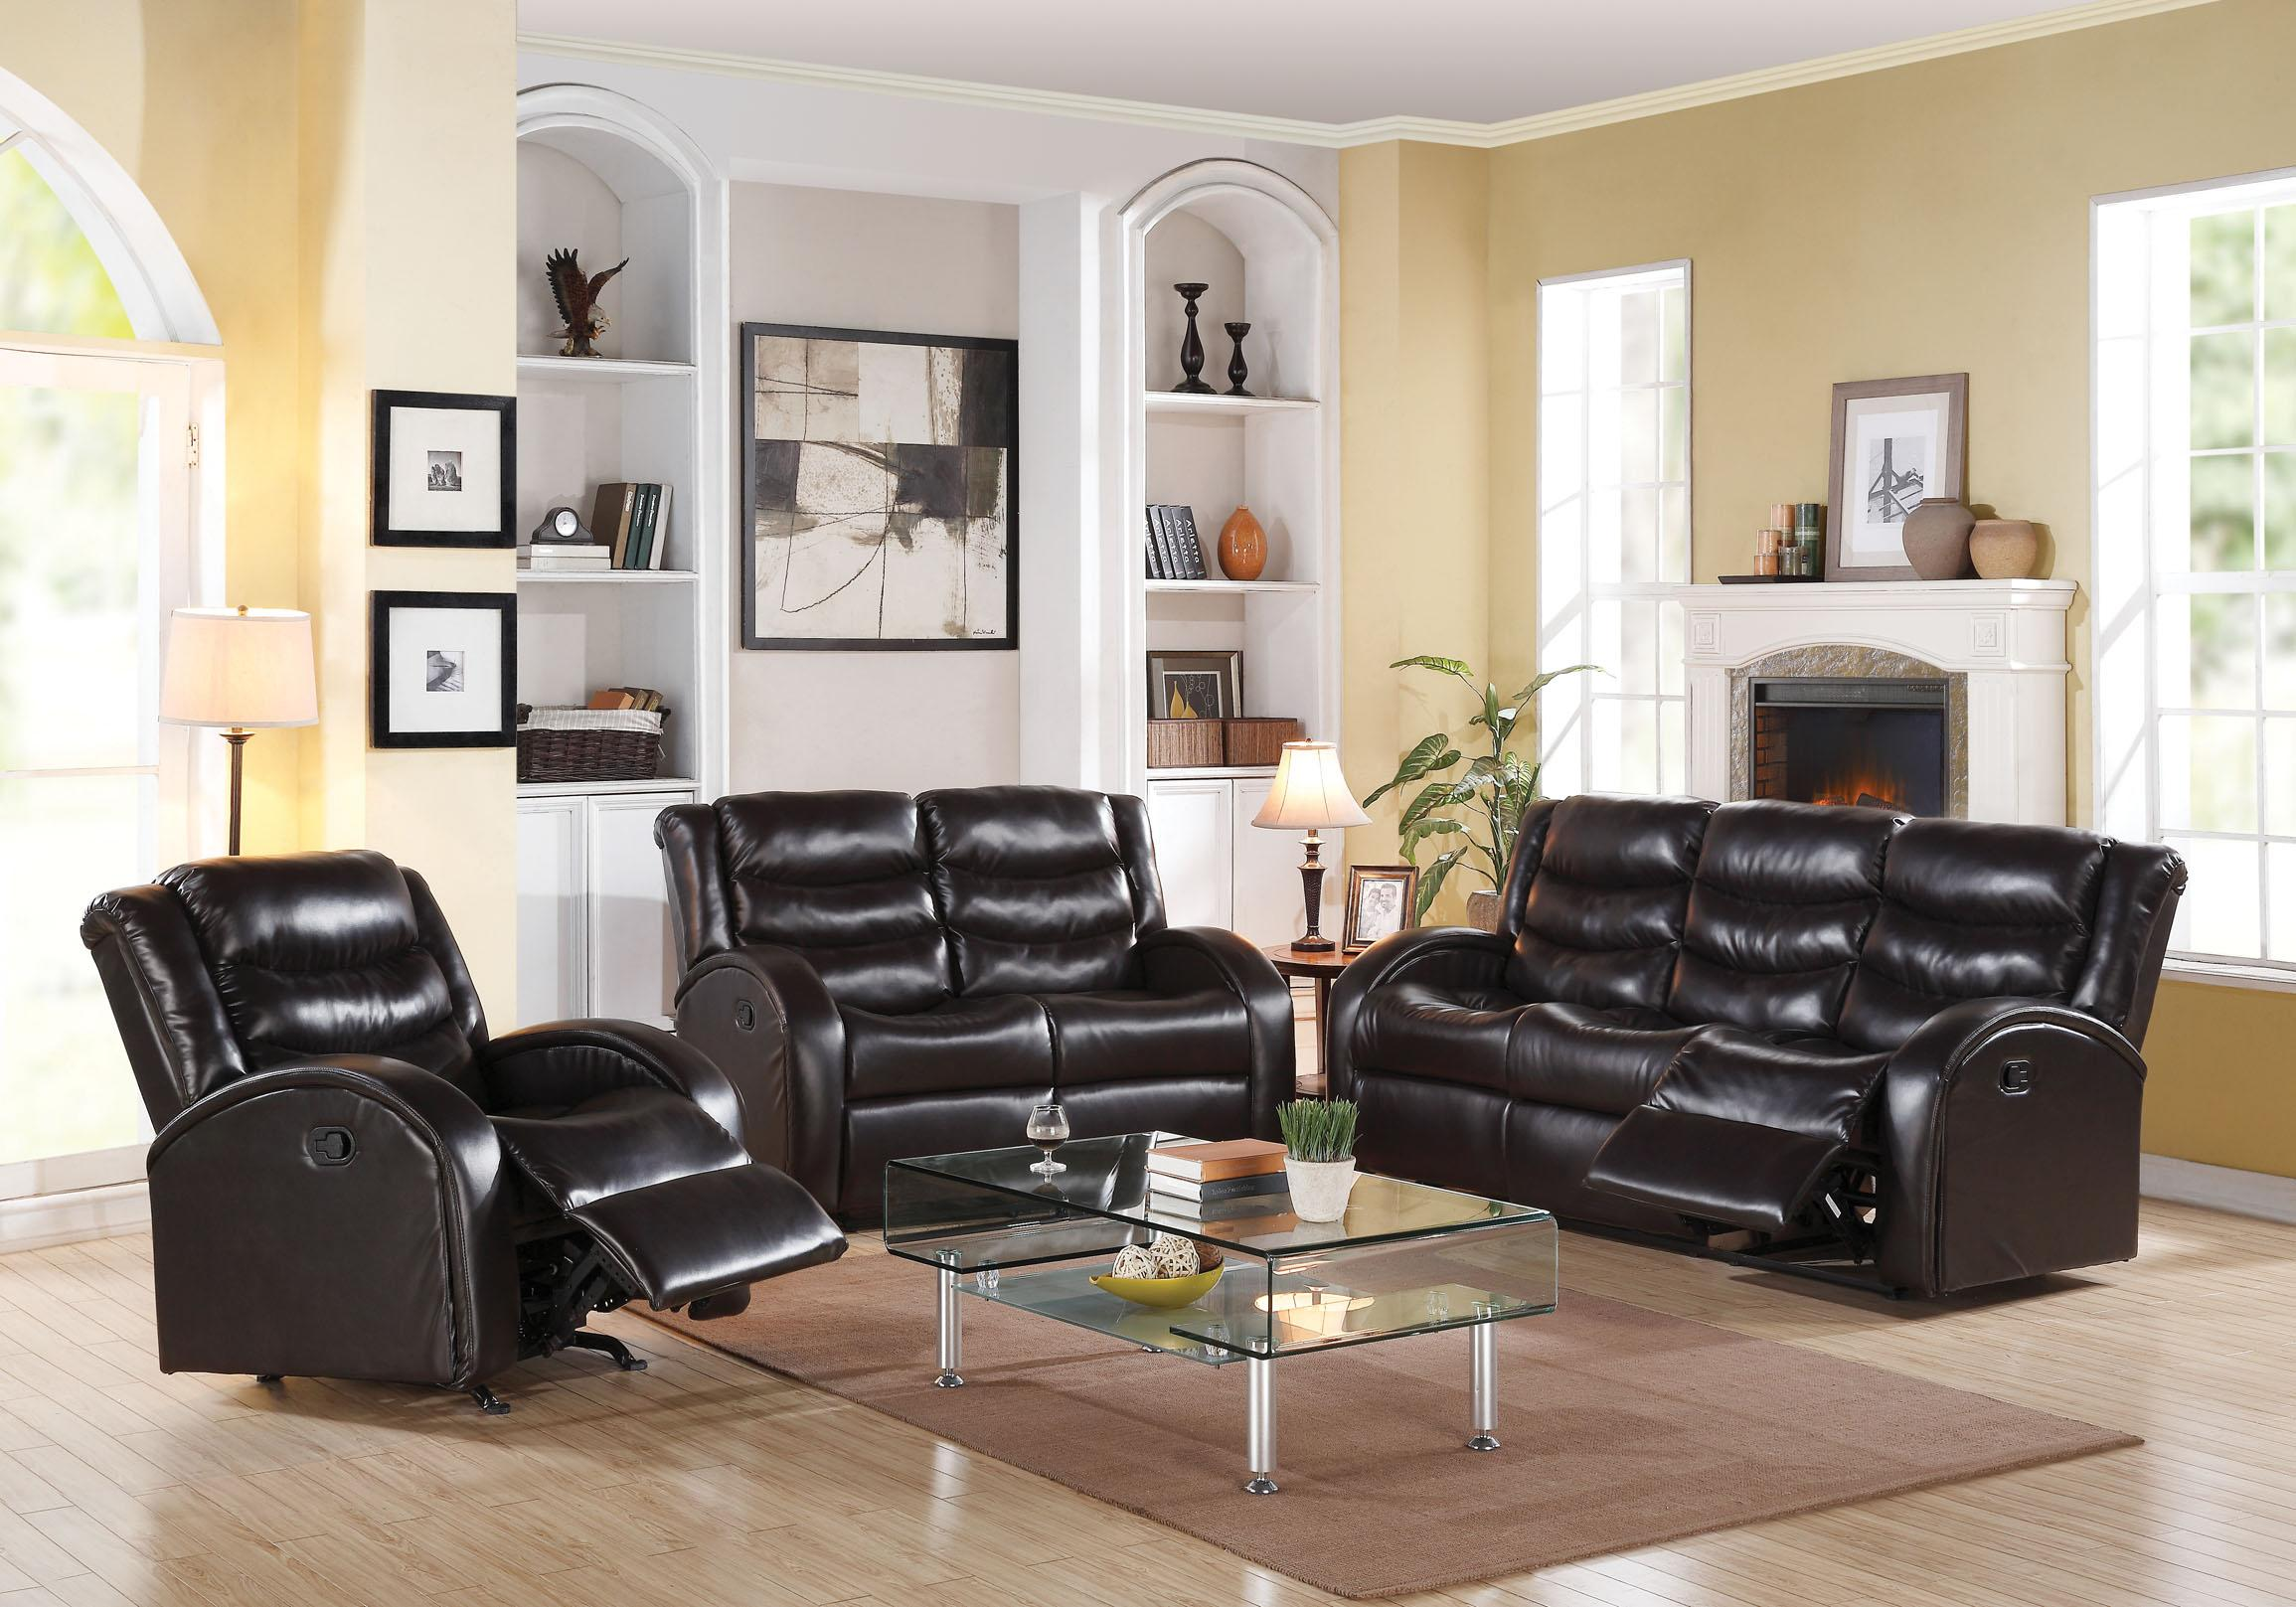 Acme Furniture Noah Reclining Living Room Group - Item Number: 5083 Living Room Group 1